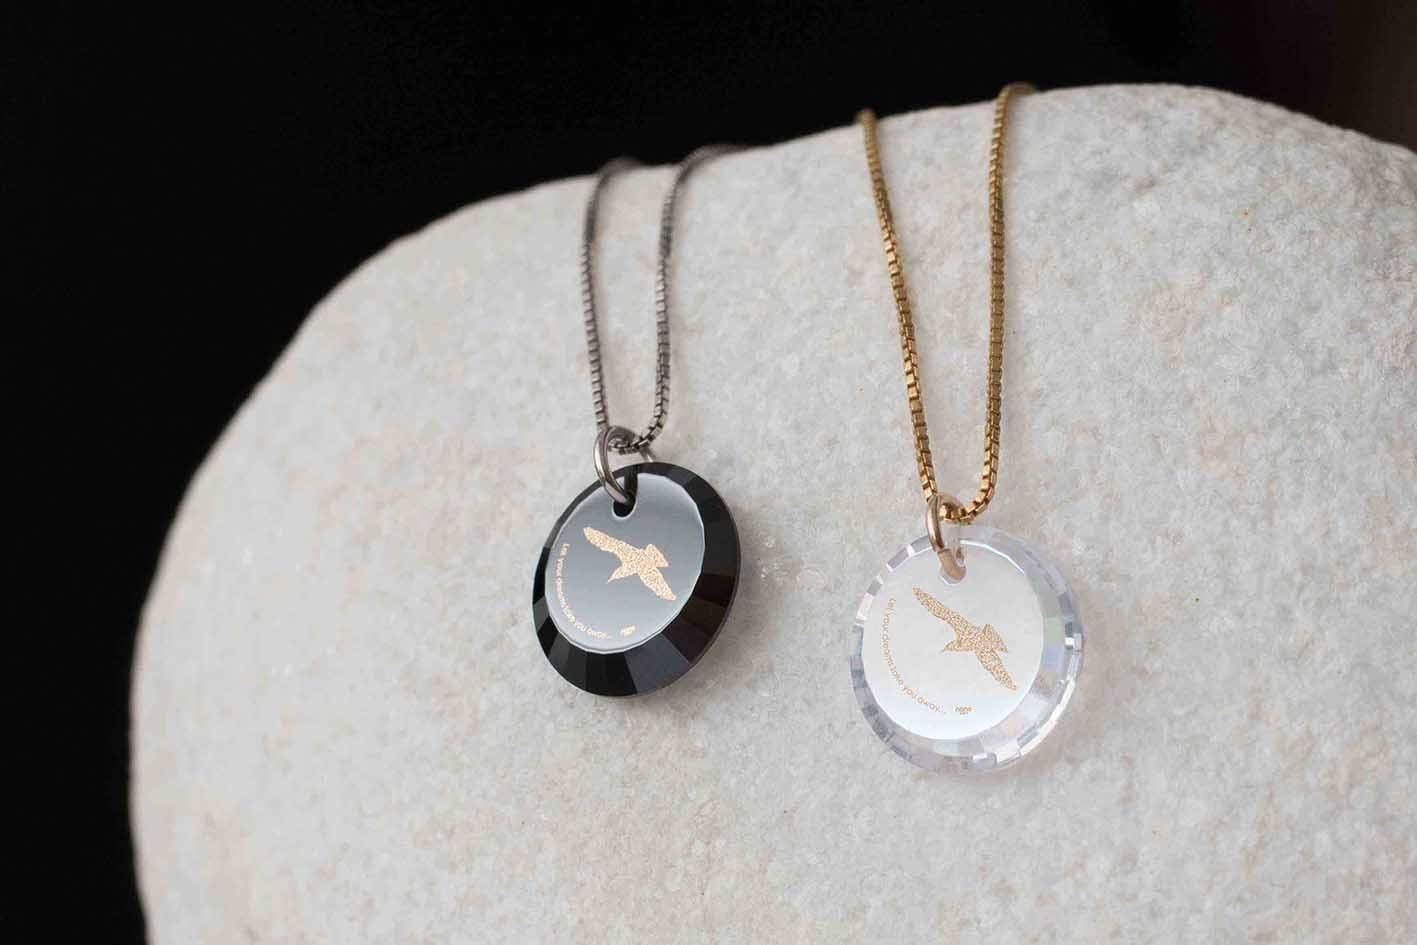 College Graduation Gifts: Bird Necklace Engraved, Daughter Necklace, Nano Jewelry